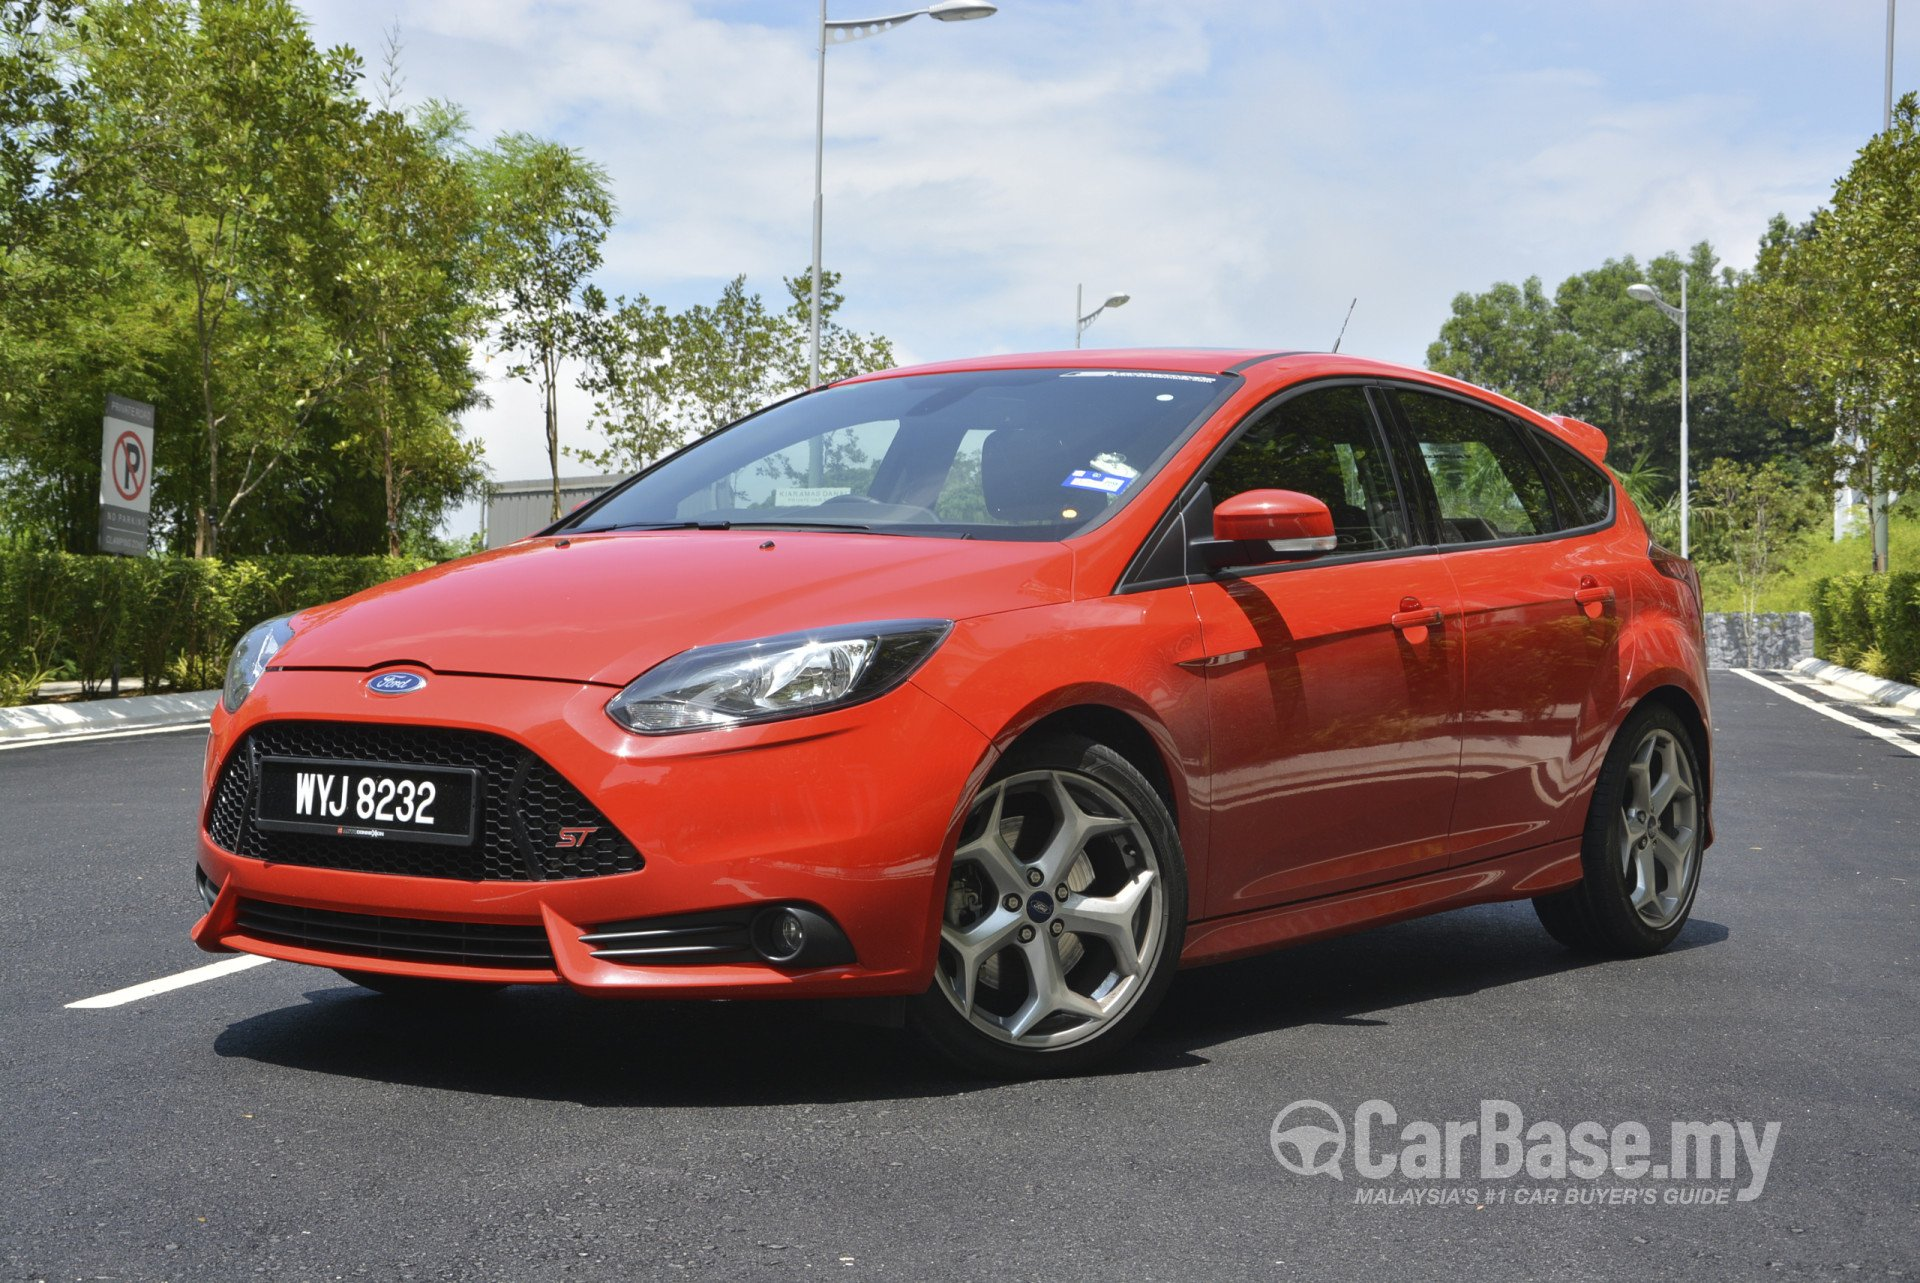 Ford Focus St Mk3 C346 2012 Exterior Image 12557 In Malaysia Reviews Specs Prices